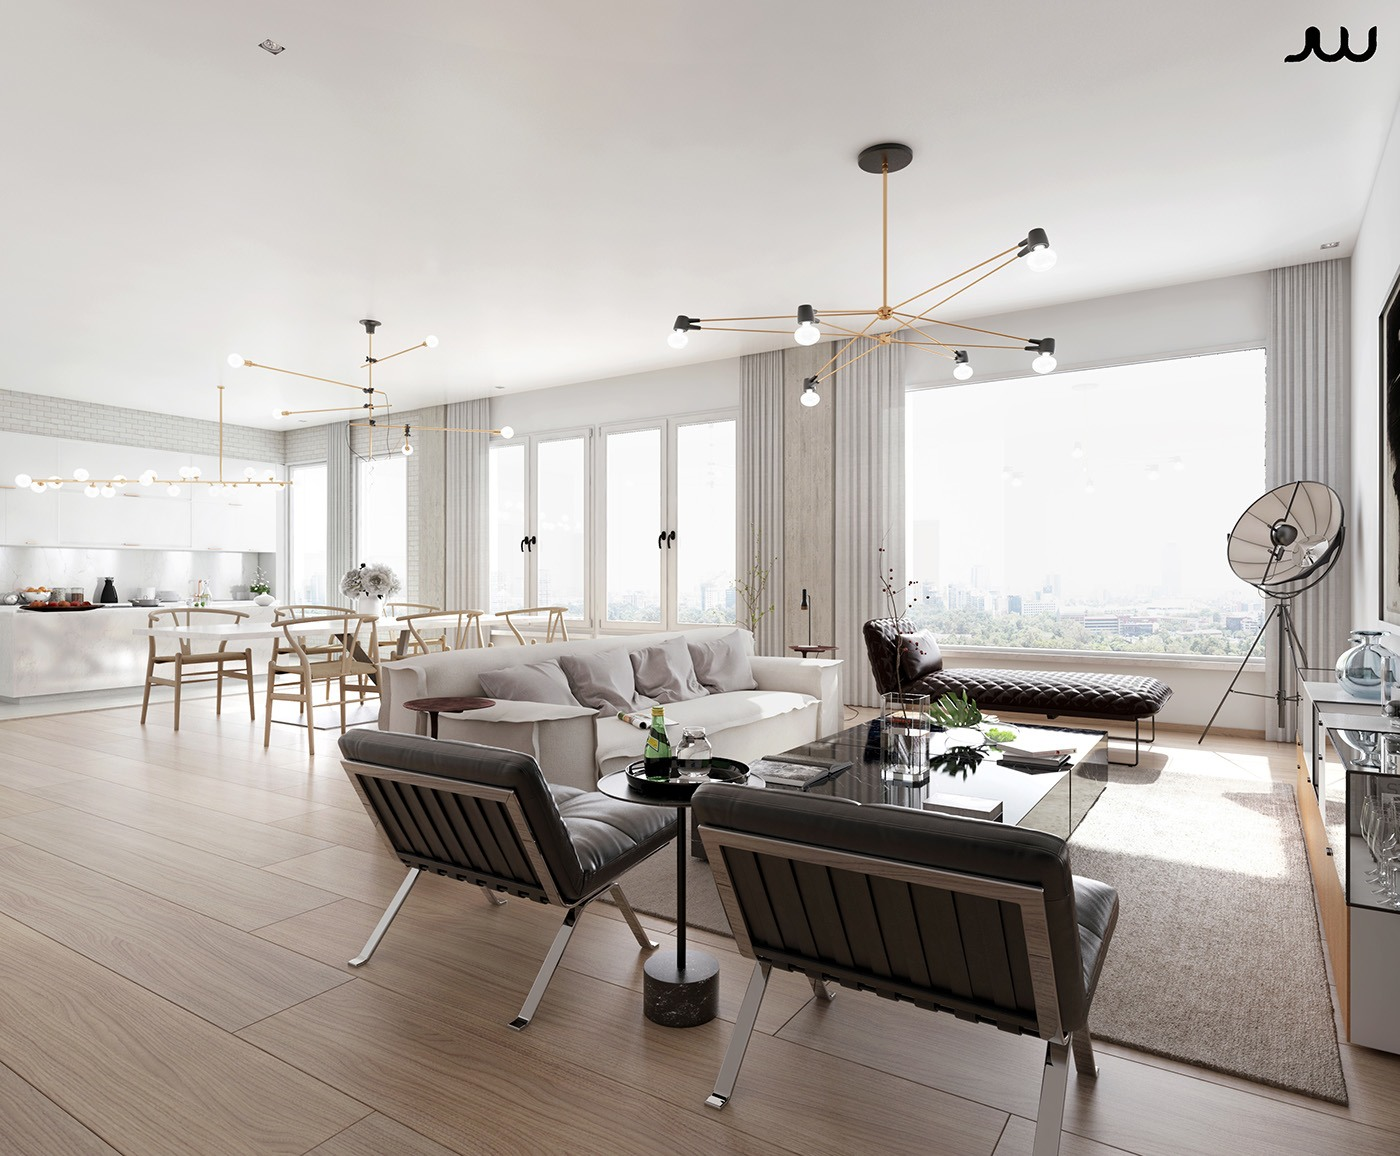 Awesome luxury apartment design ideas by javier wainstein for Modern luxury apartment design